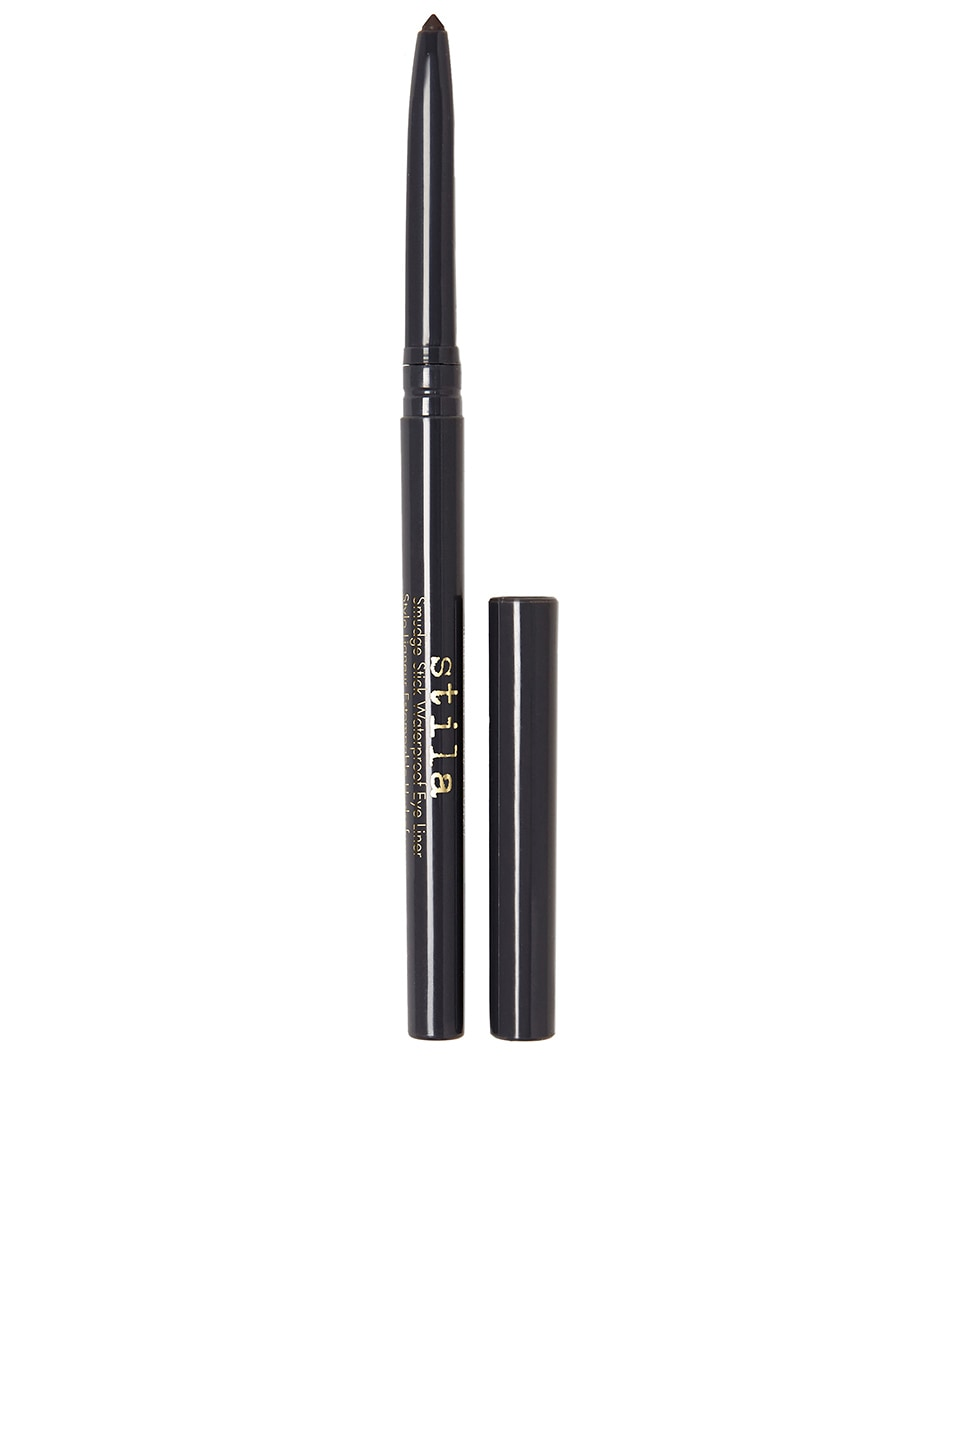 Stila Smudge Stick Waterproof Eye Liner in Graphite